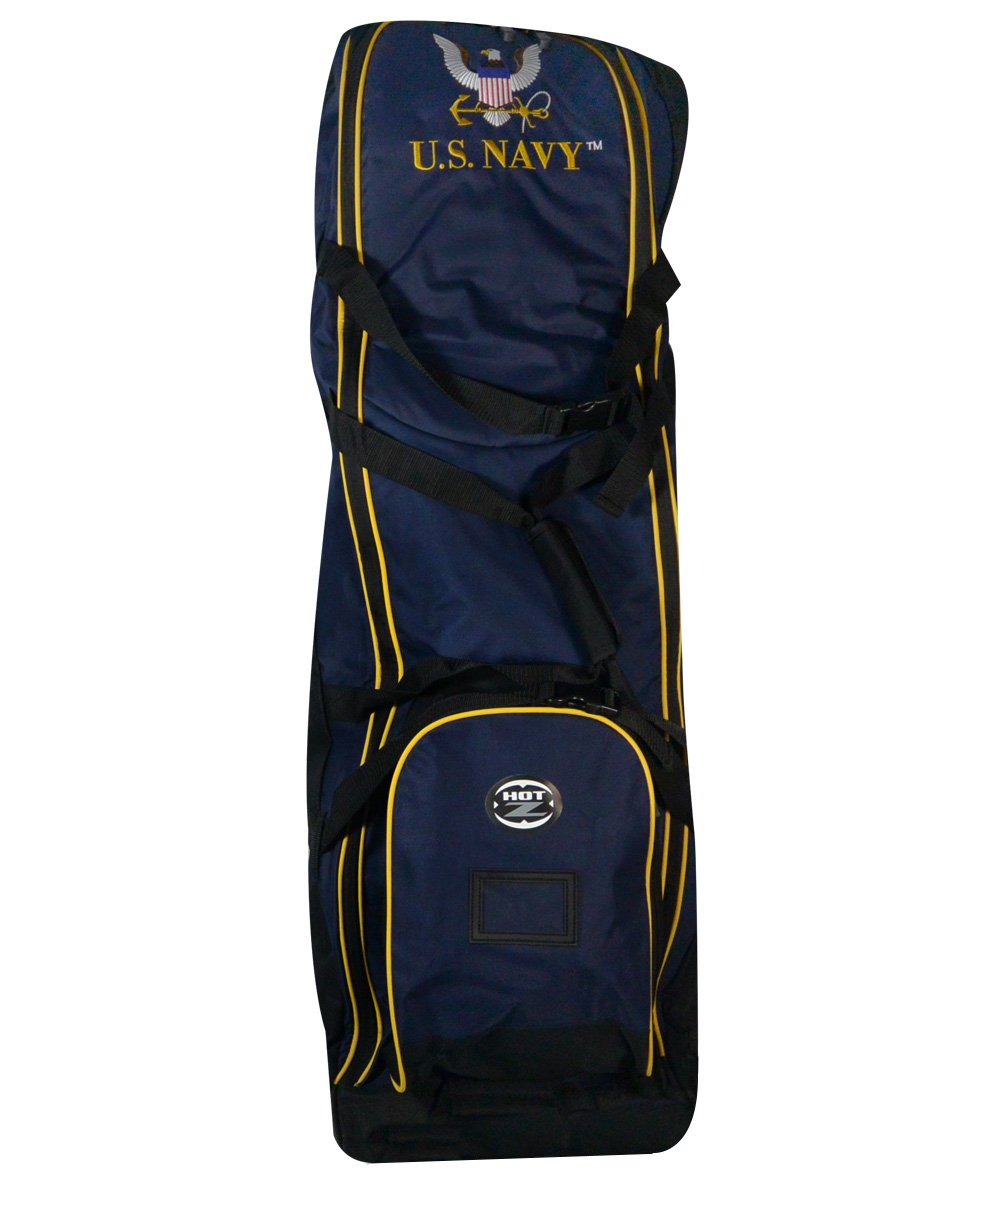 Hot-Z Golf Navy US Military Travel Cover